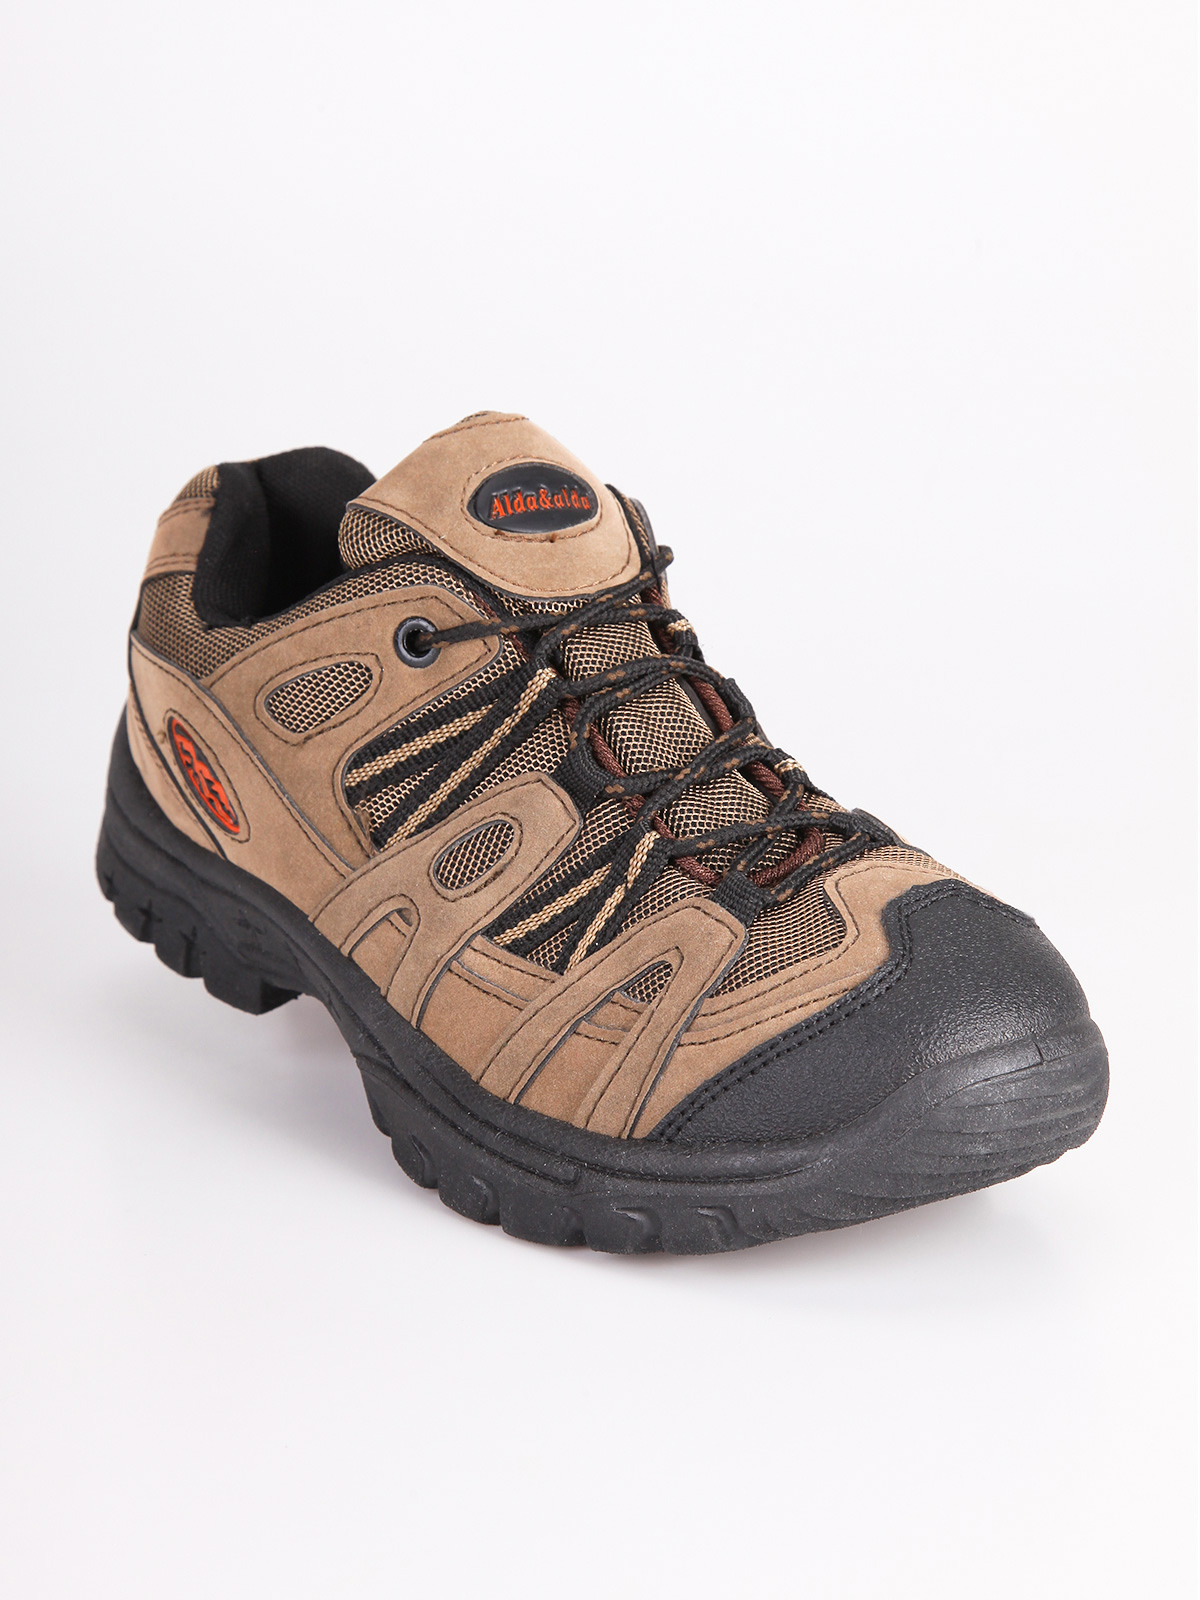 Hiking shoes two-color